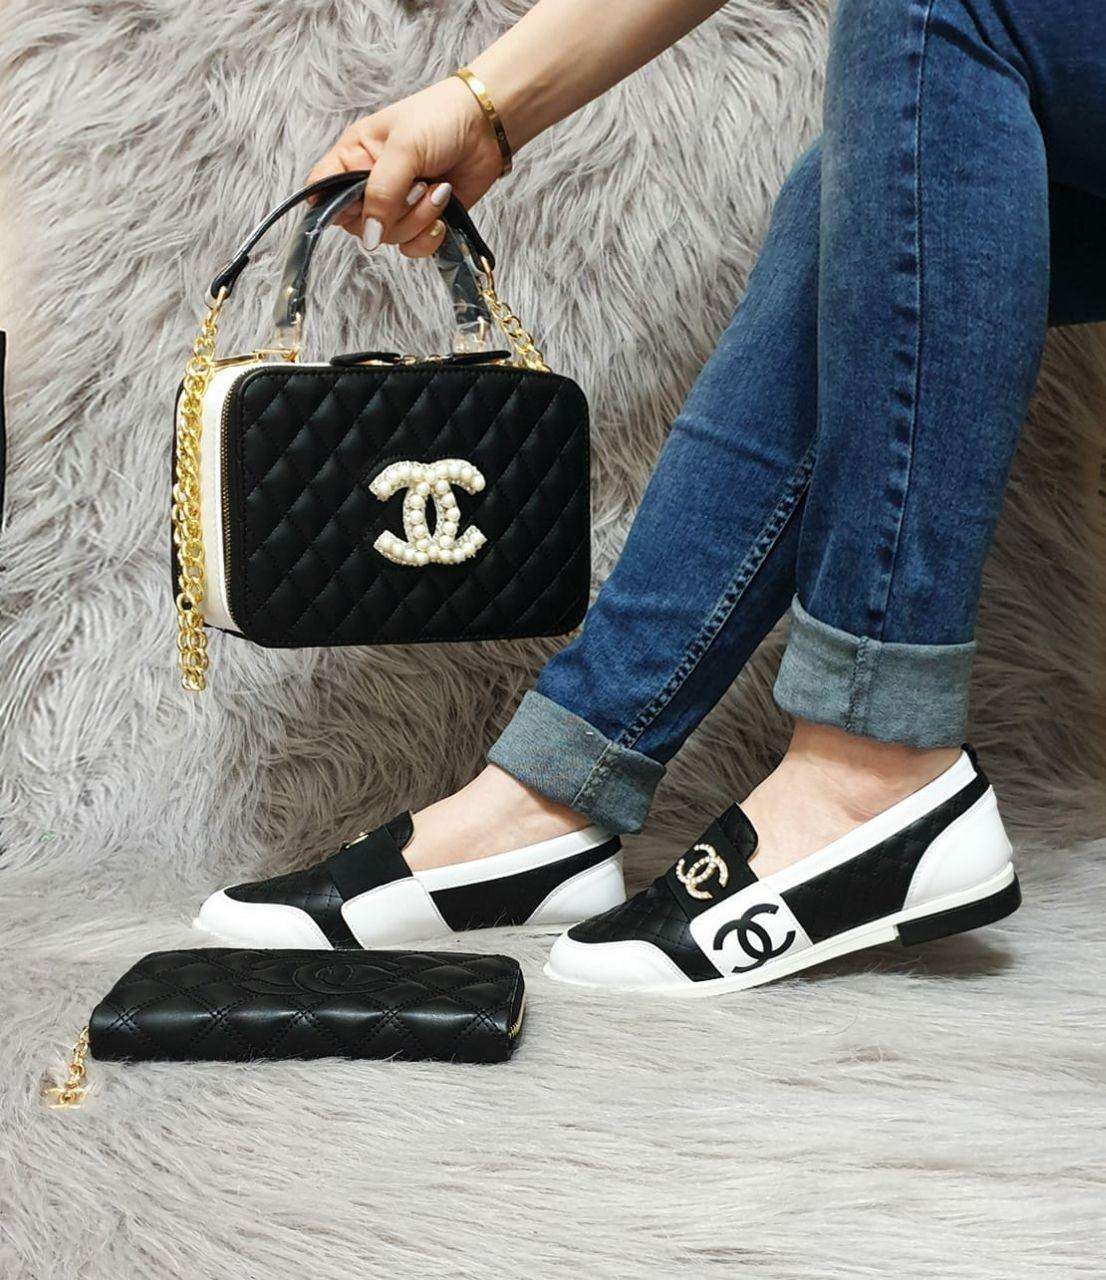 Made in Turkey High Quality Brand Handbags and Shoes Set